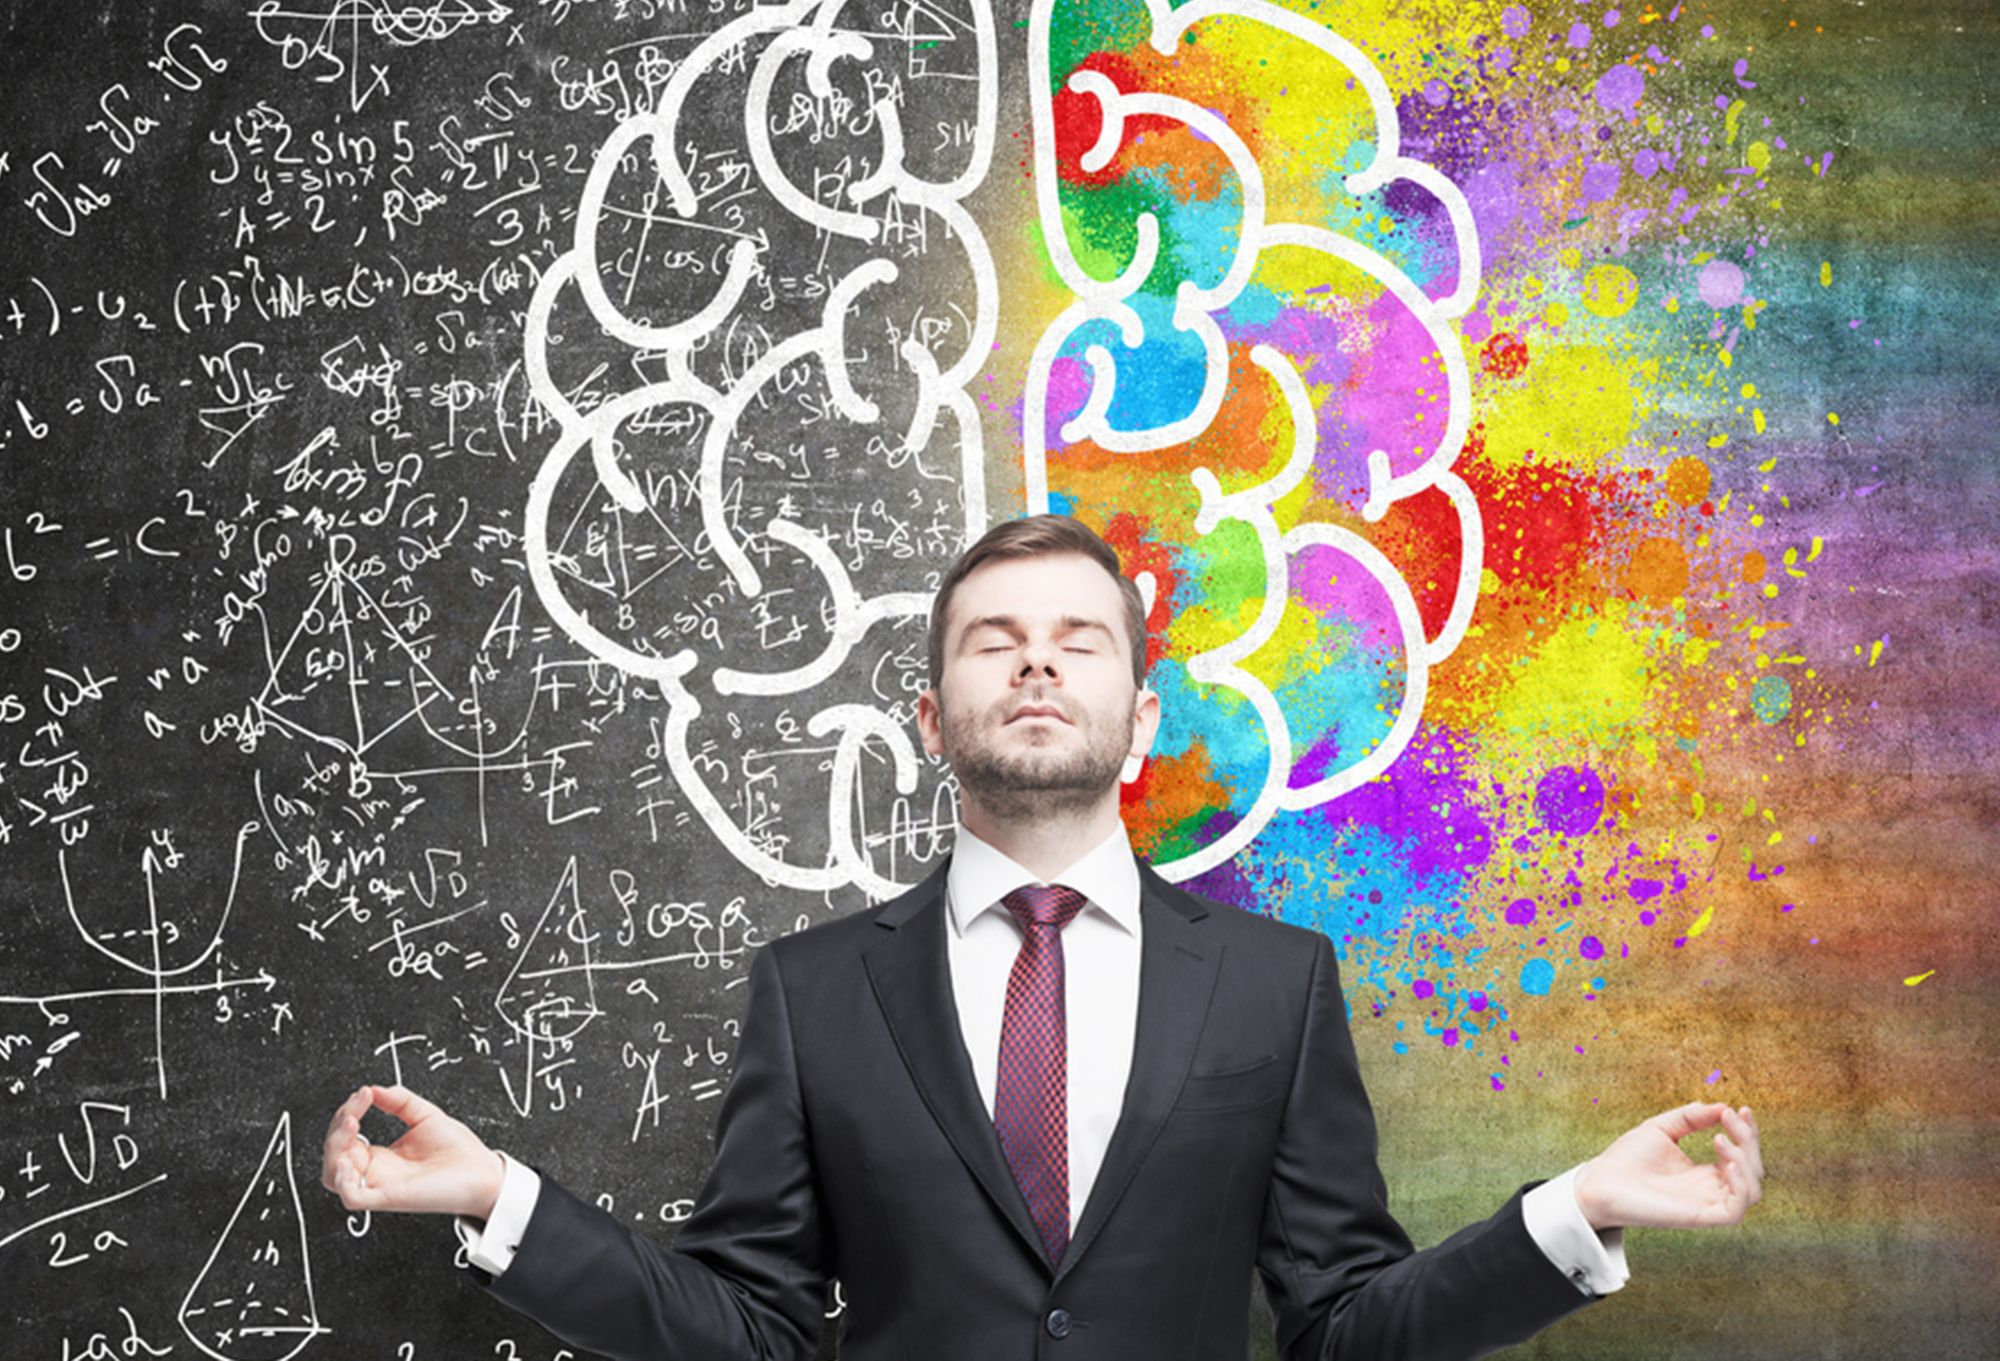 The importance of emotional intelligence